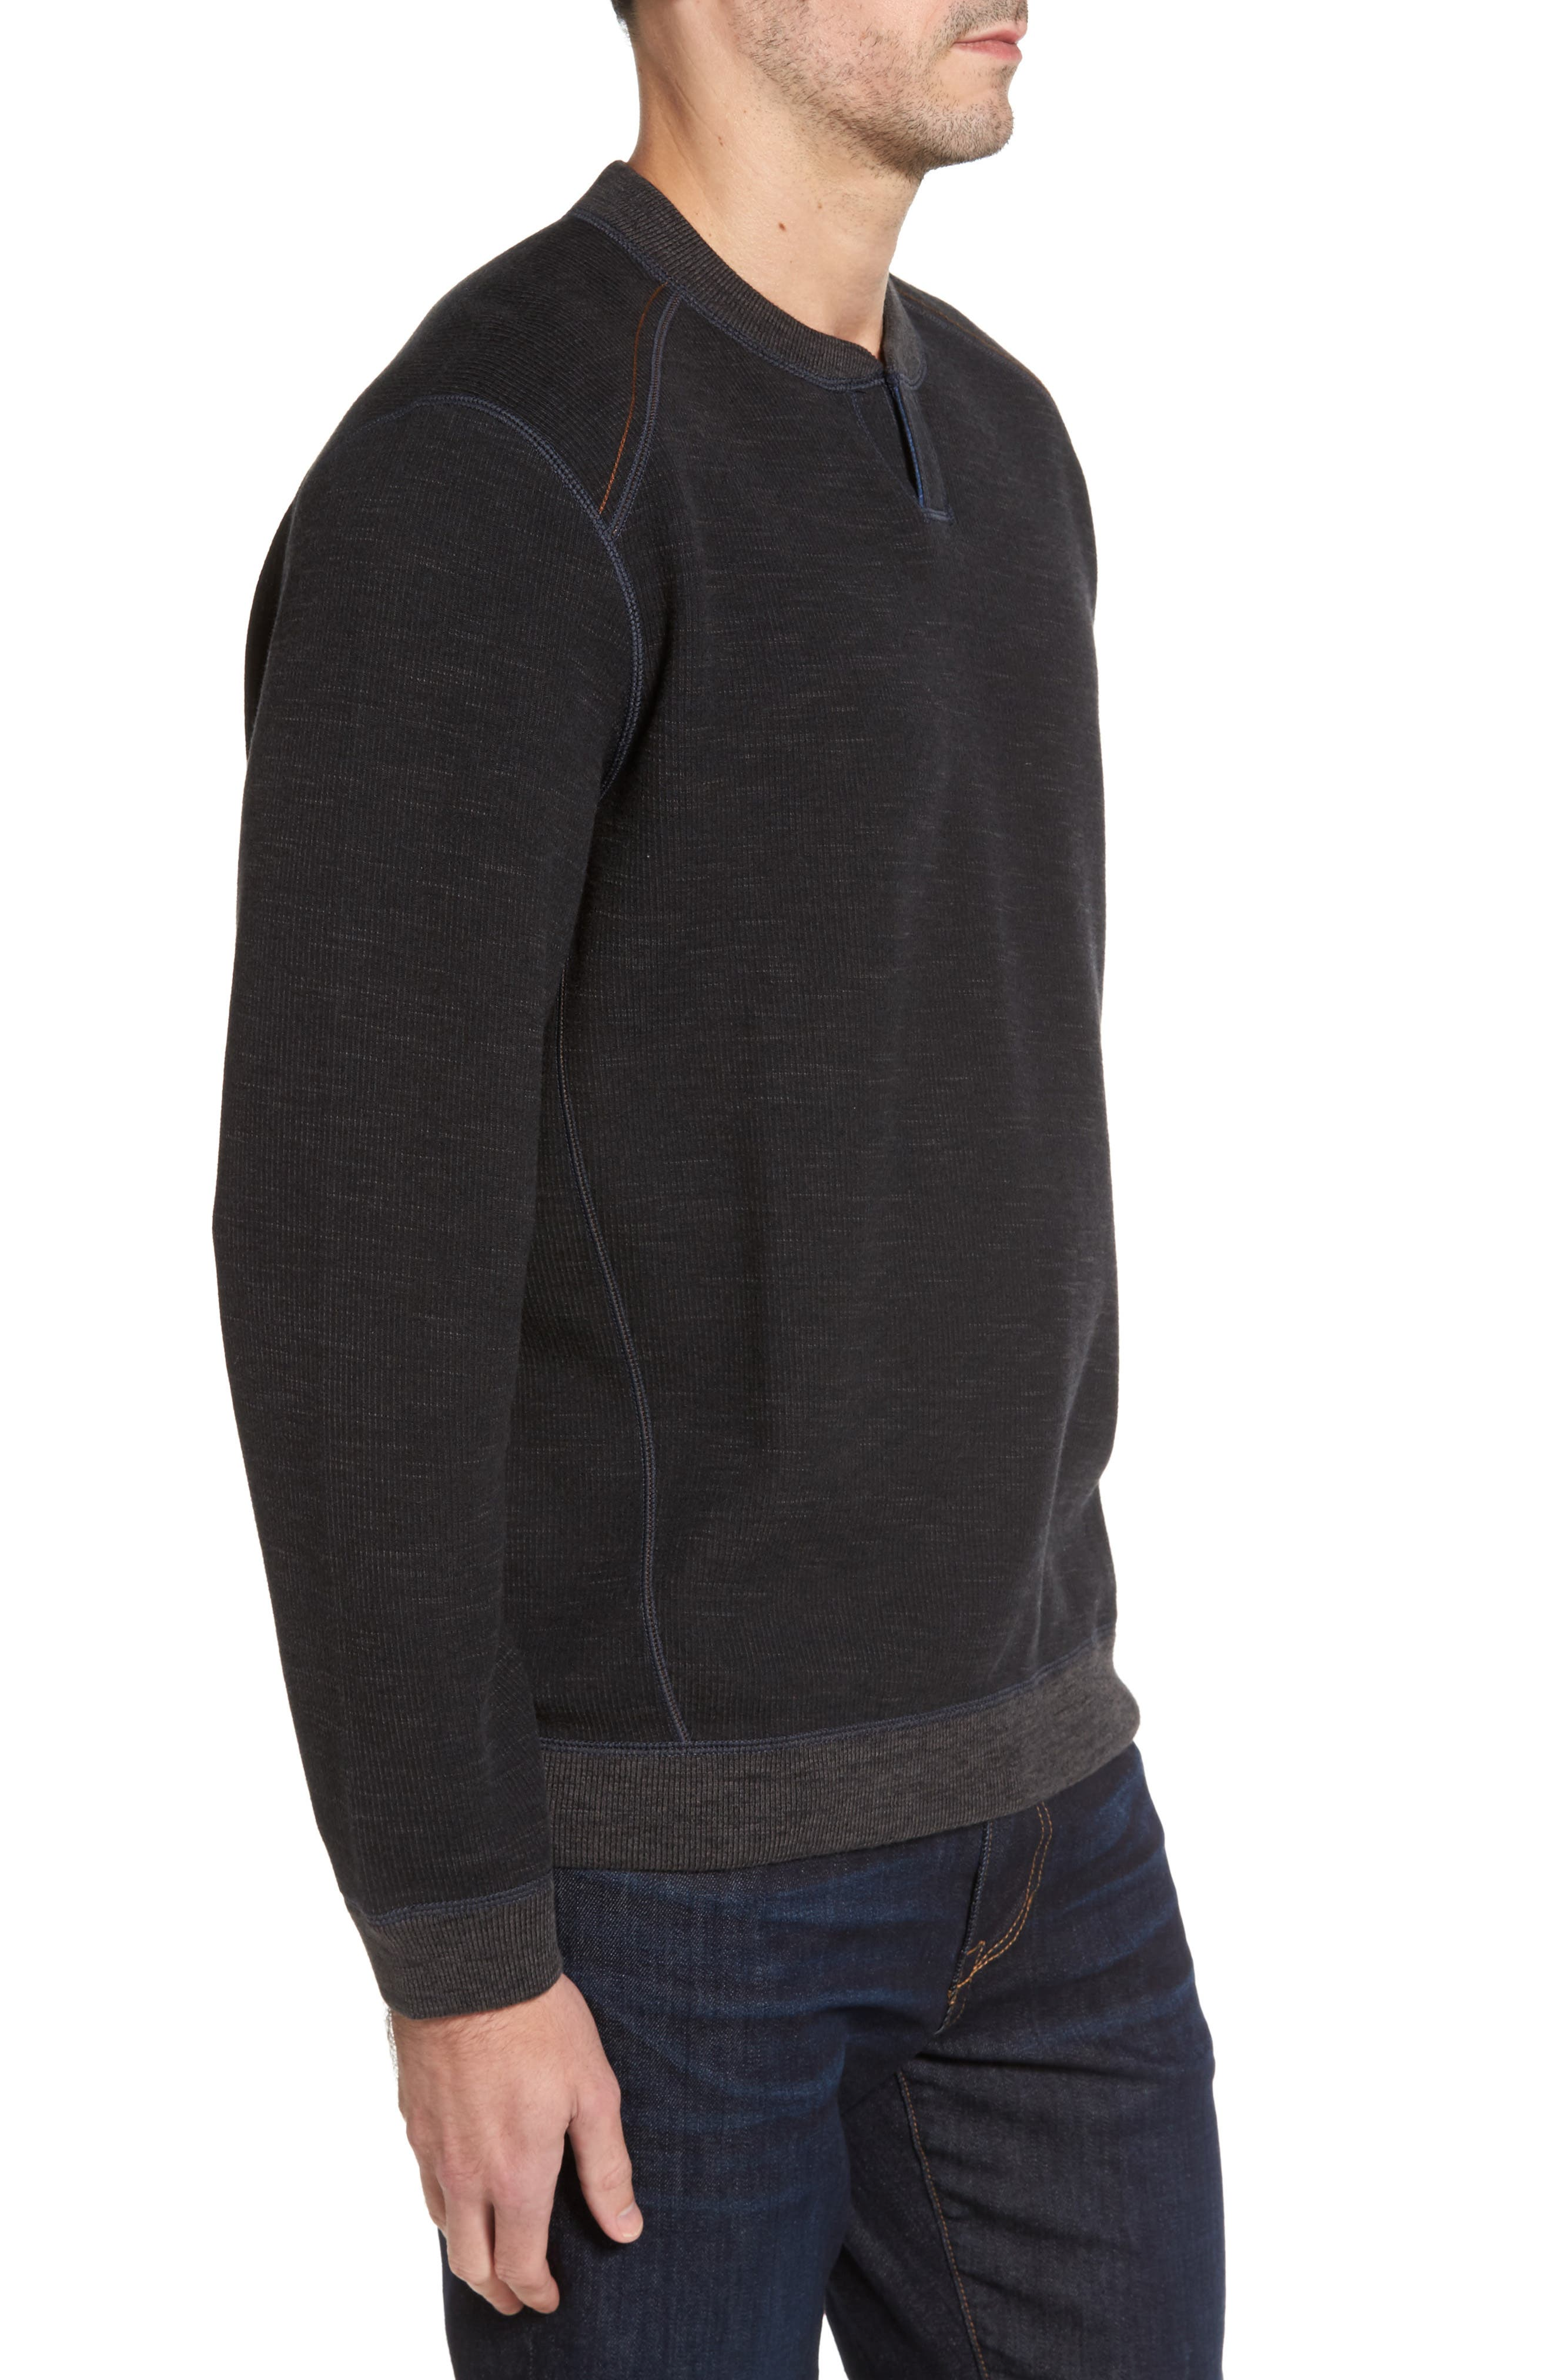 Flipsider Abaco Pullover,                             Alternate thumbnail 2, color,                             Black